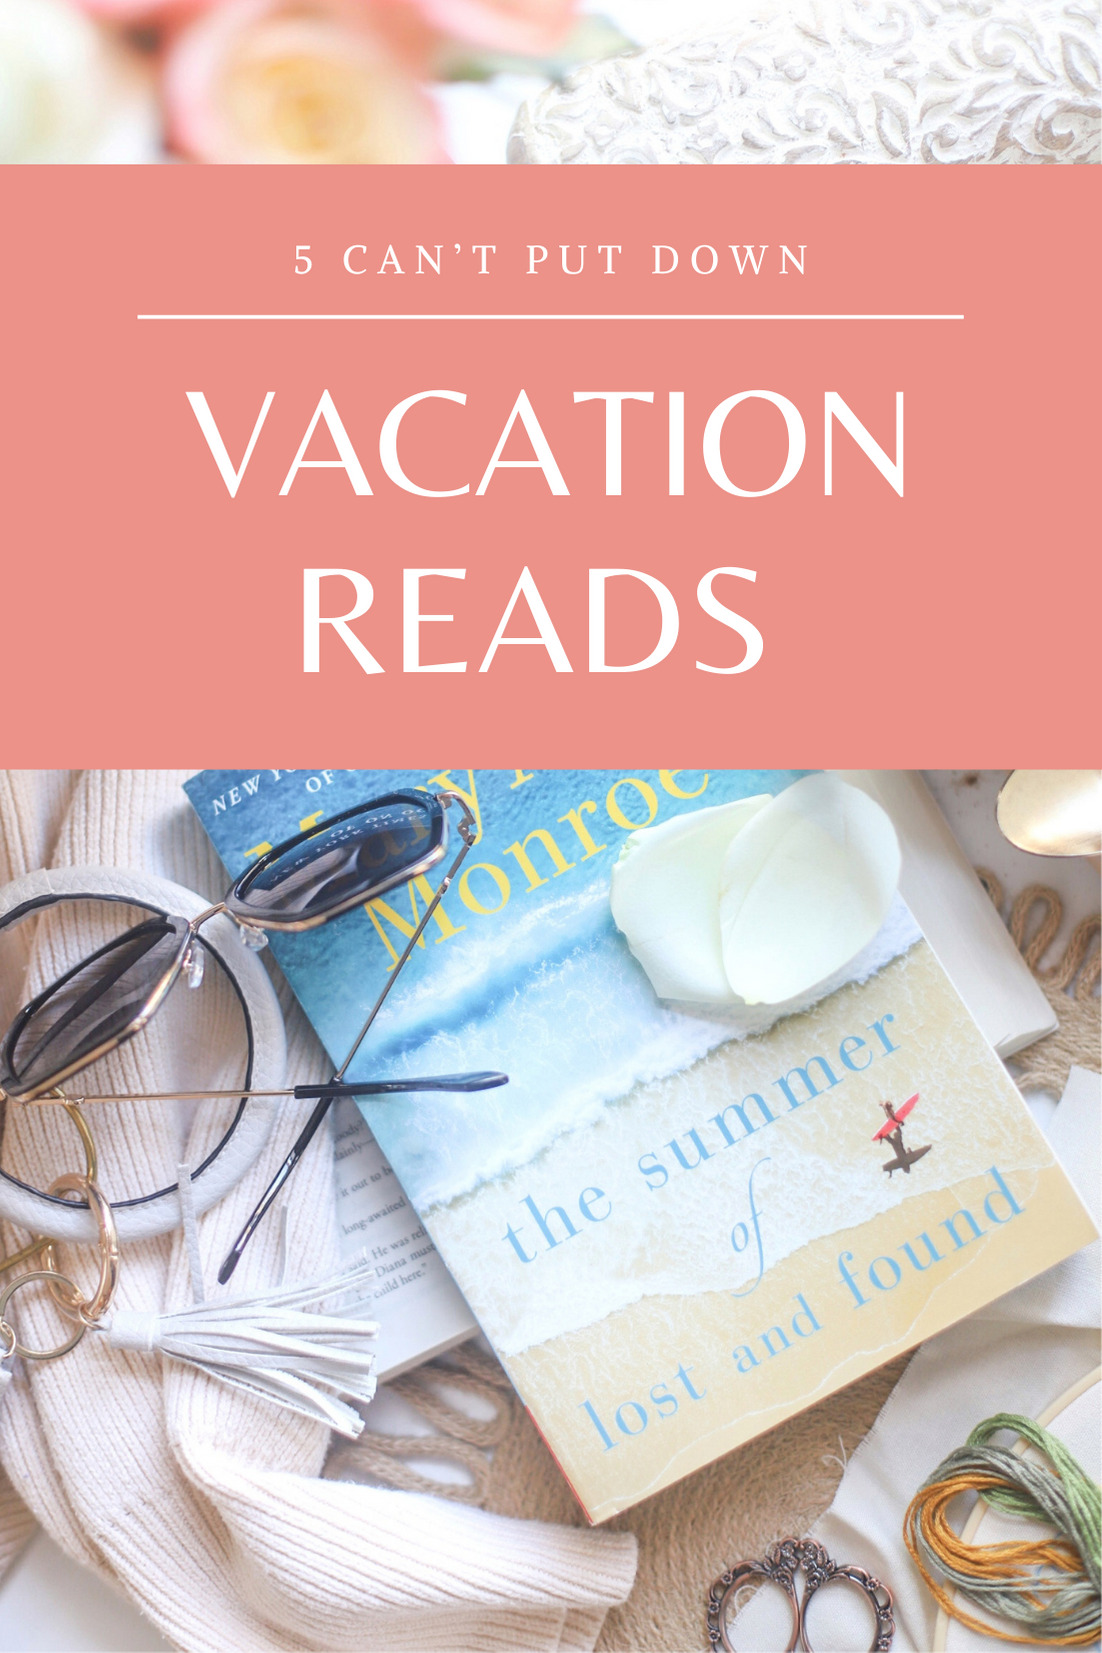 book with text 5 Can't Put down vacation reads